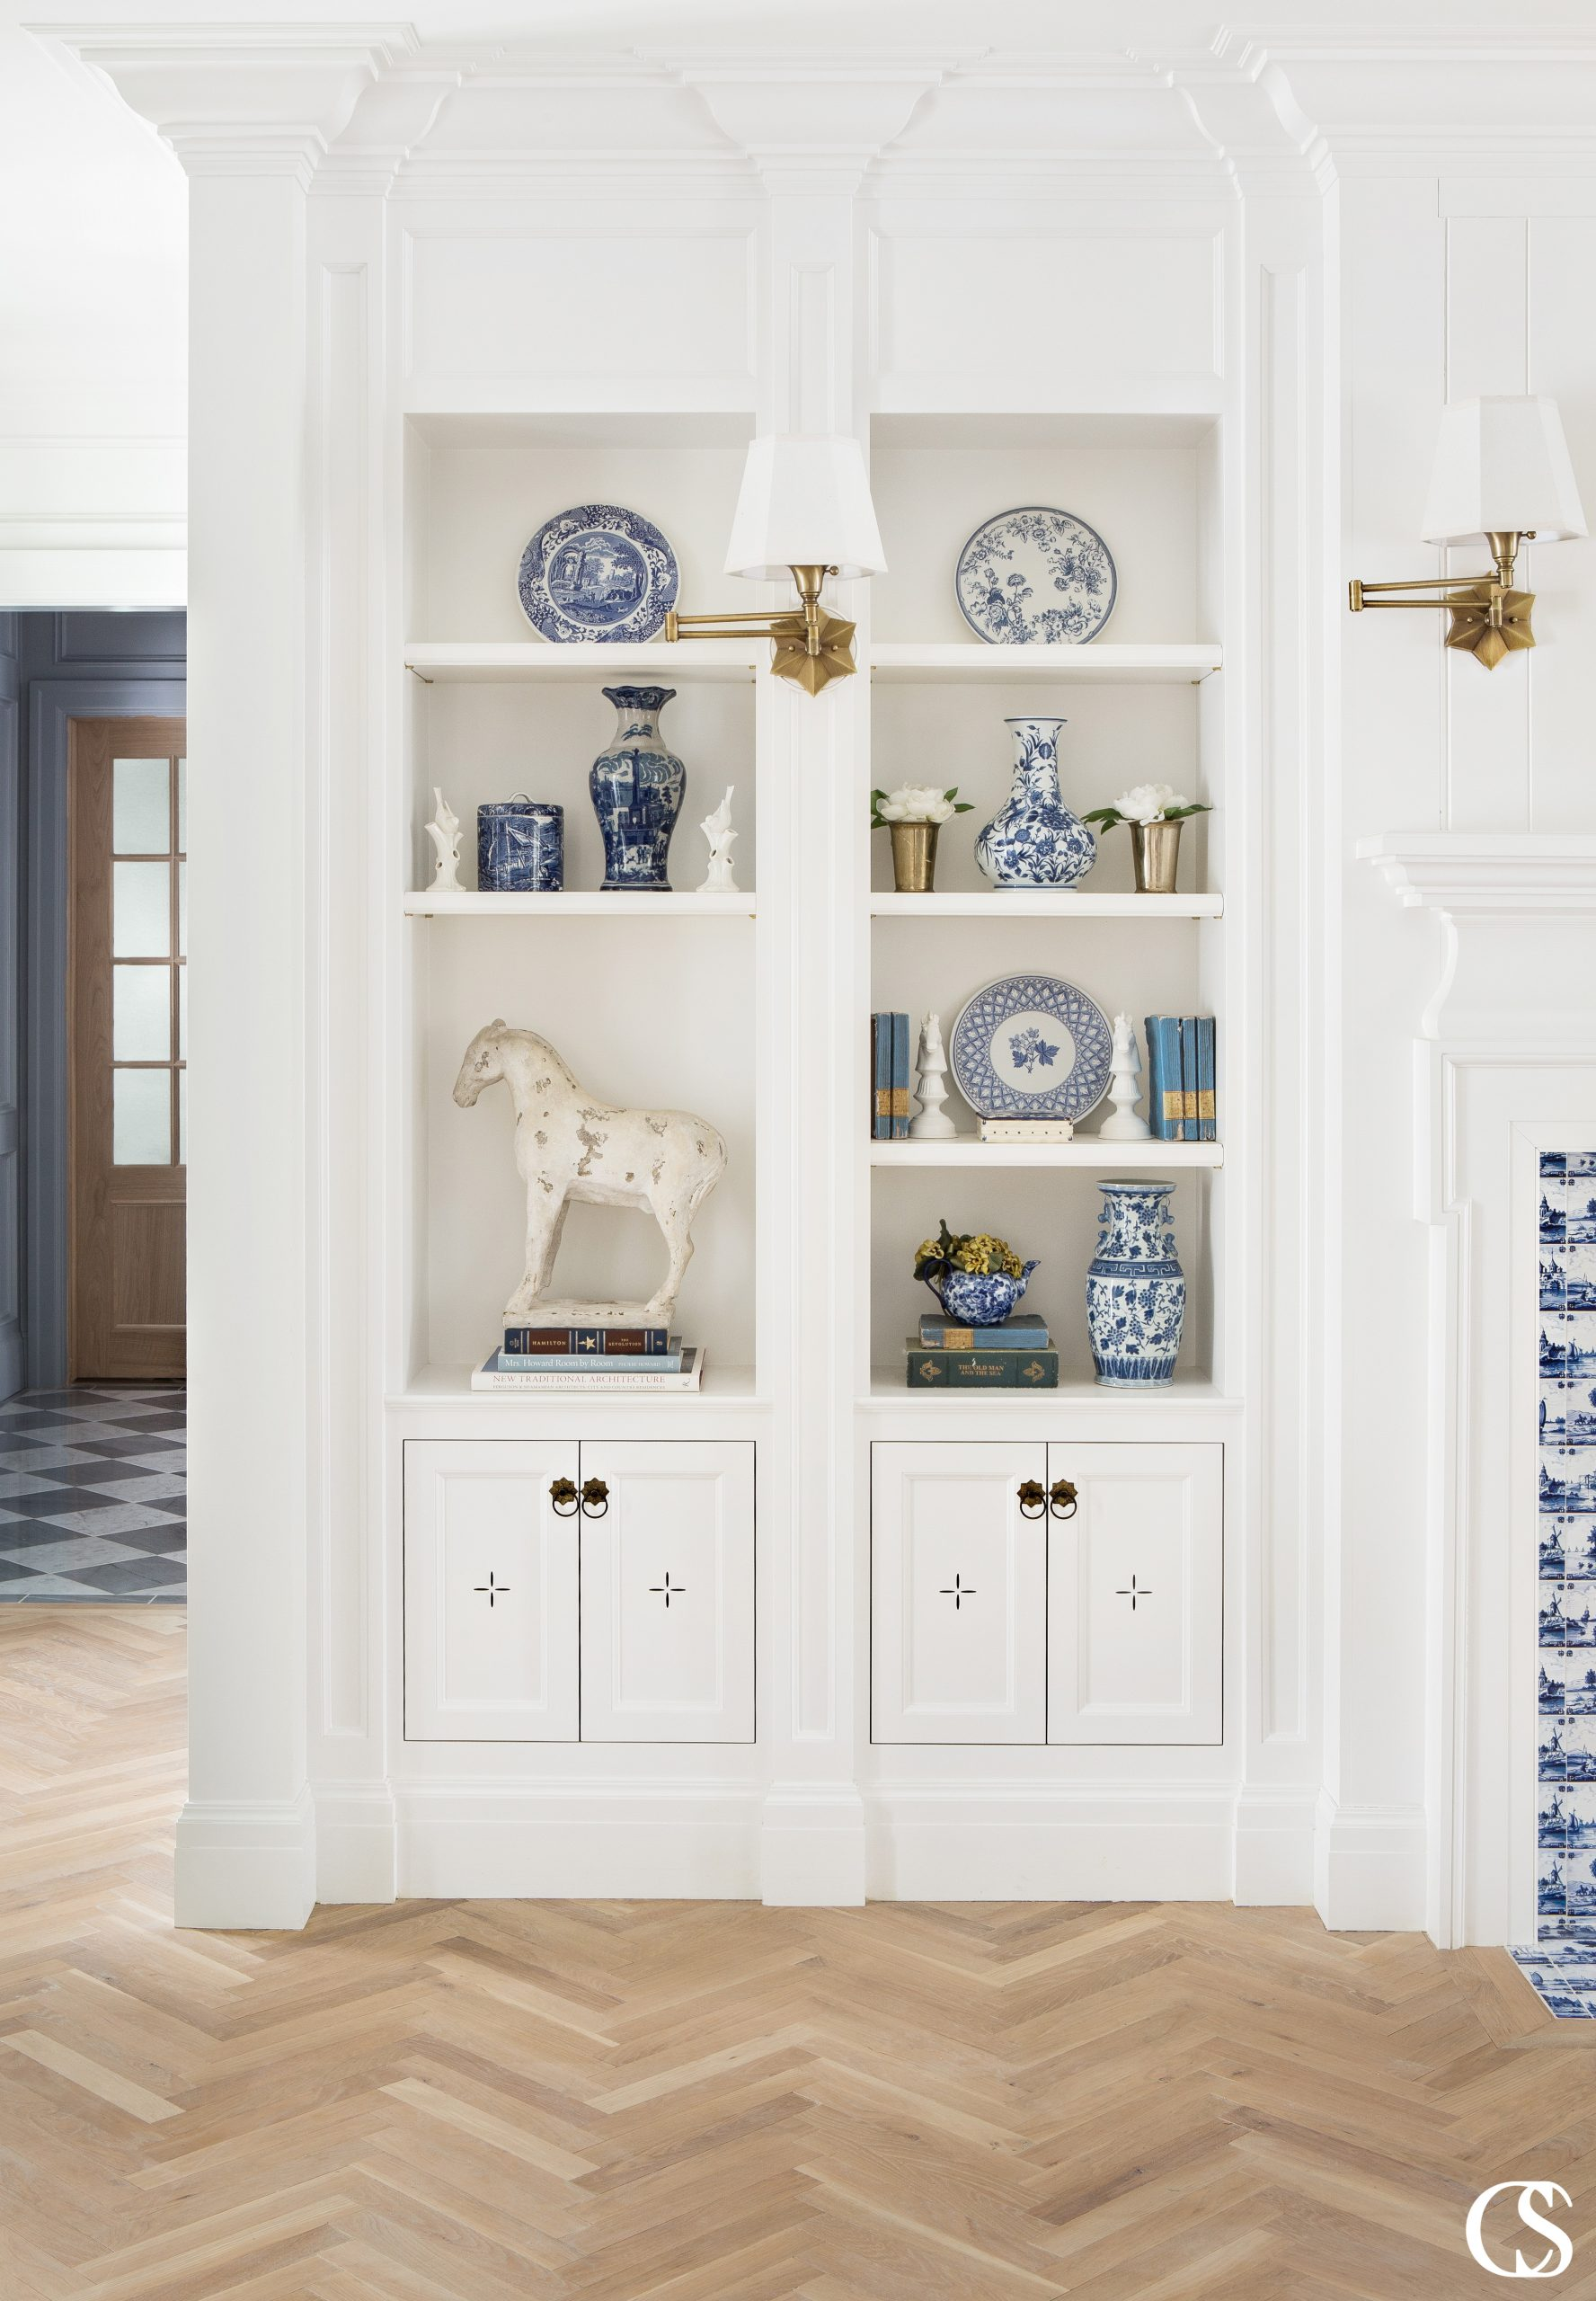 The best built in custom cabinets include a 100% unique design to fit your living space and are based on your aesthetic and functional needs.